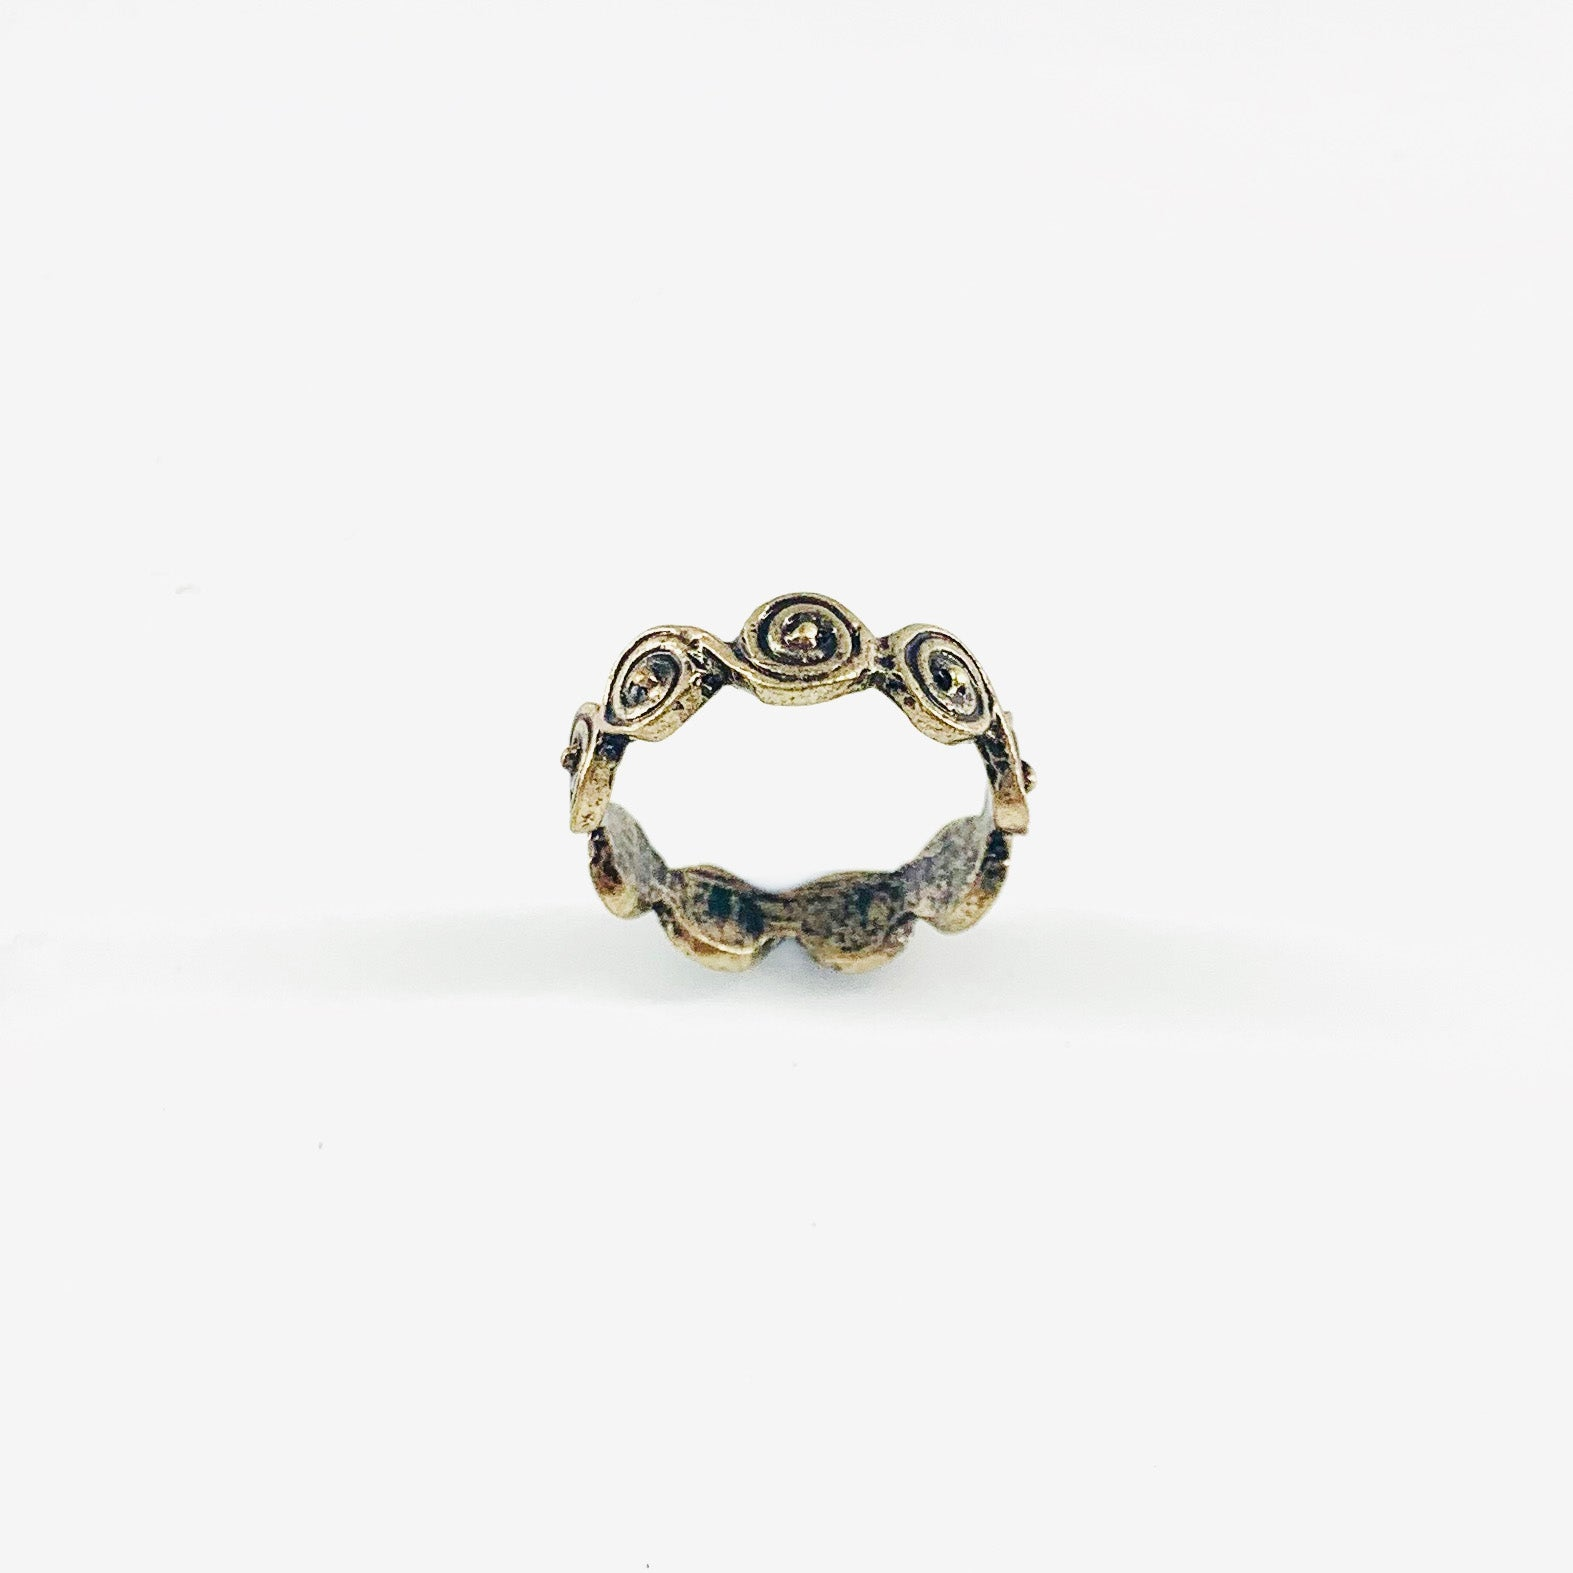 Vintage-styled ring with circular design patterns